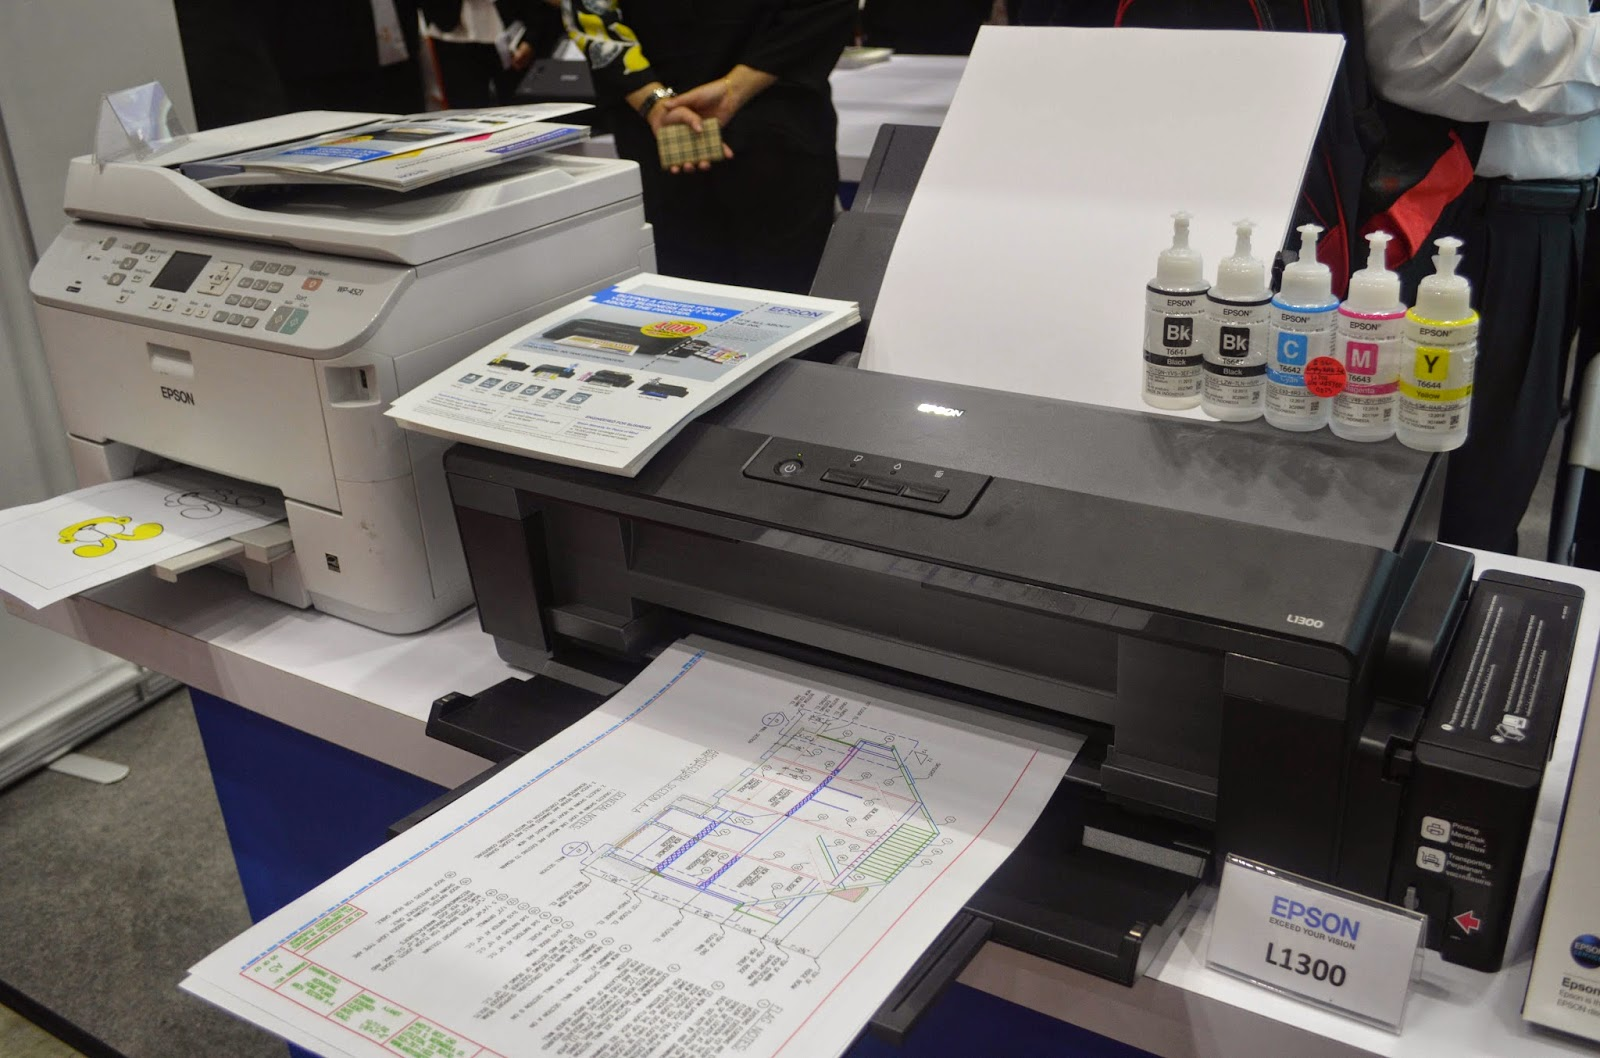 Sc Cyberworld Malaysias Latest It News Epson Brings Education To Printer L1300 The Worlds First 4 Colour A3 Original Ink Tank System Ultra Affordability High Quality Document Printing